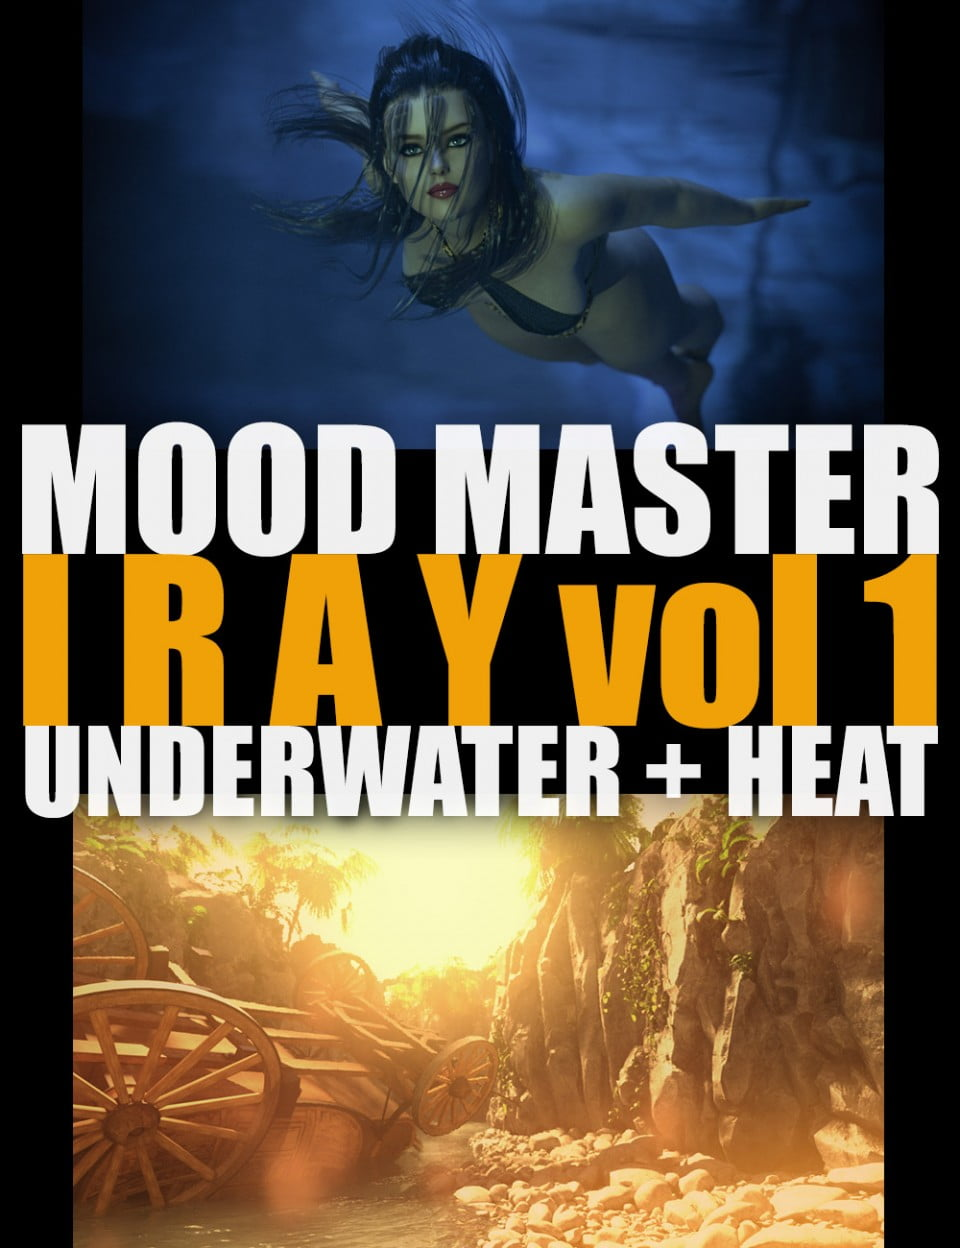 Mood Master Iray – Vol1 – Underwater and Heat